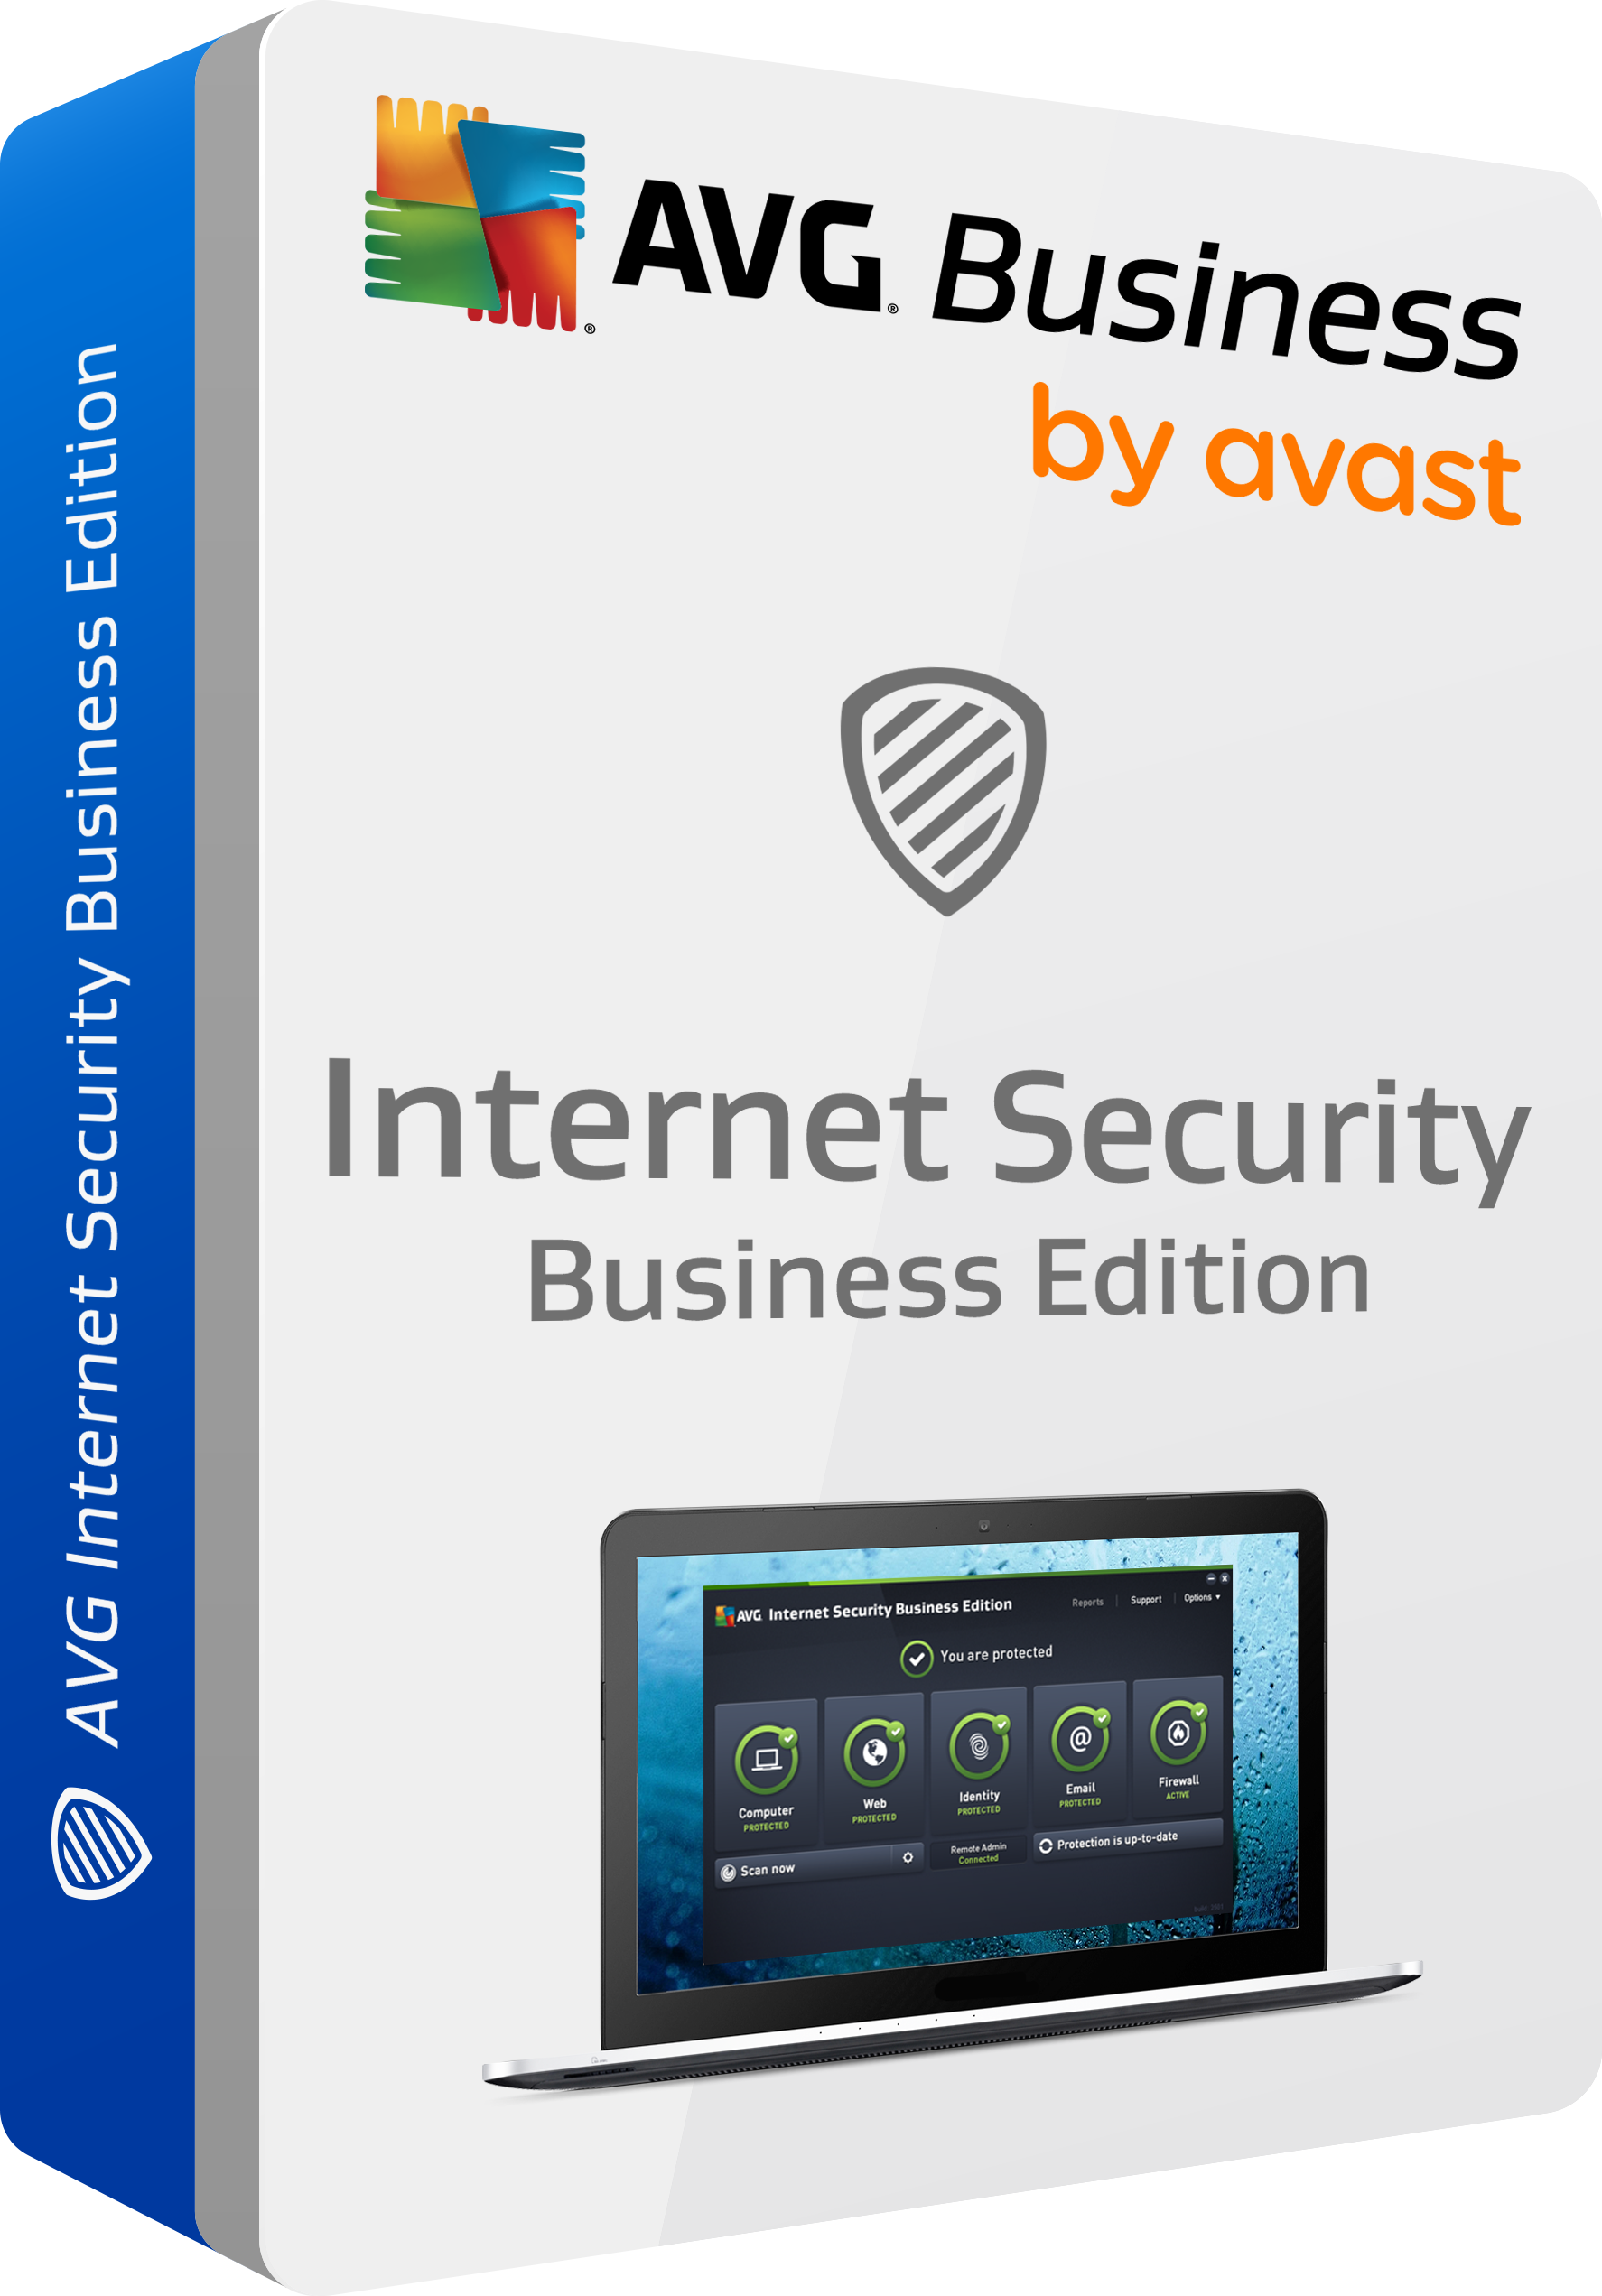 AVG Internet Security Business Edition, 1 Year License